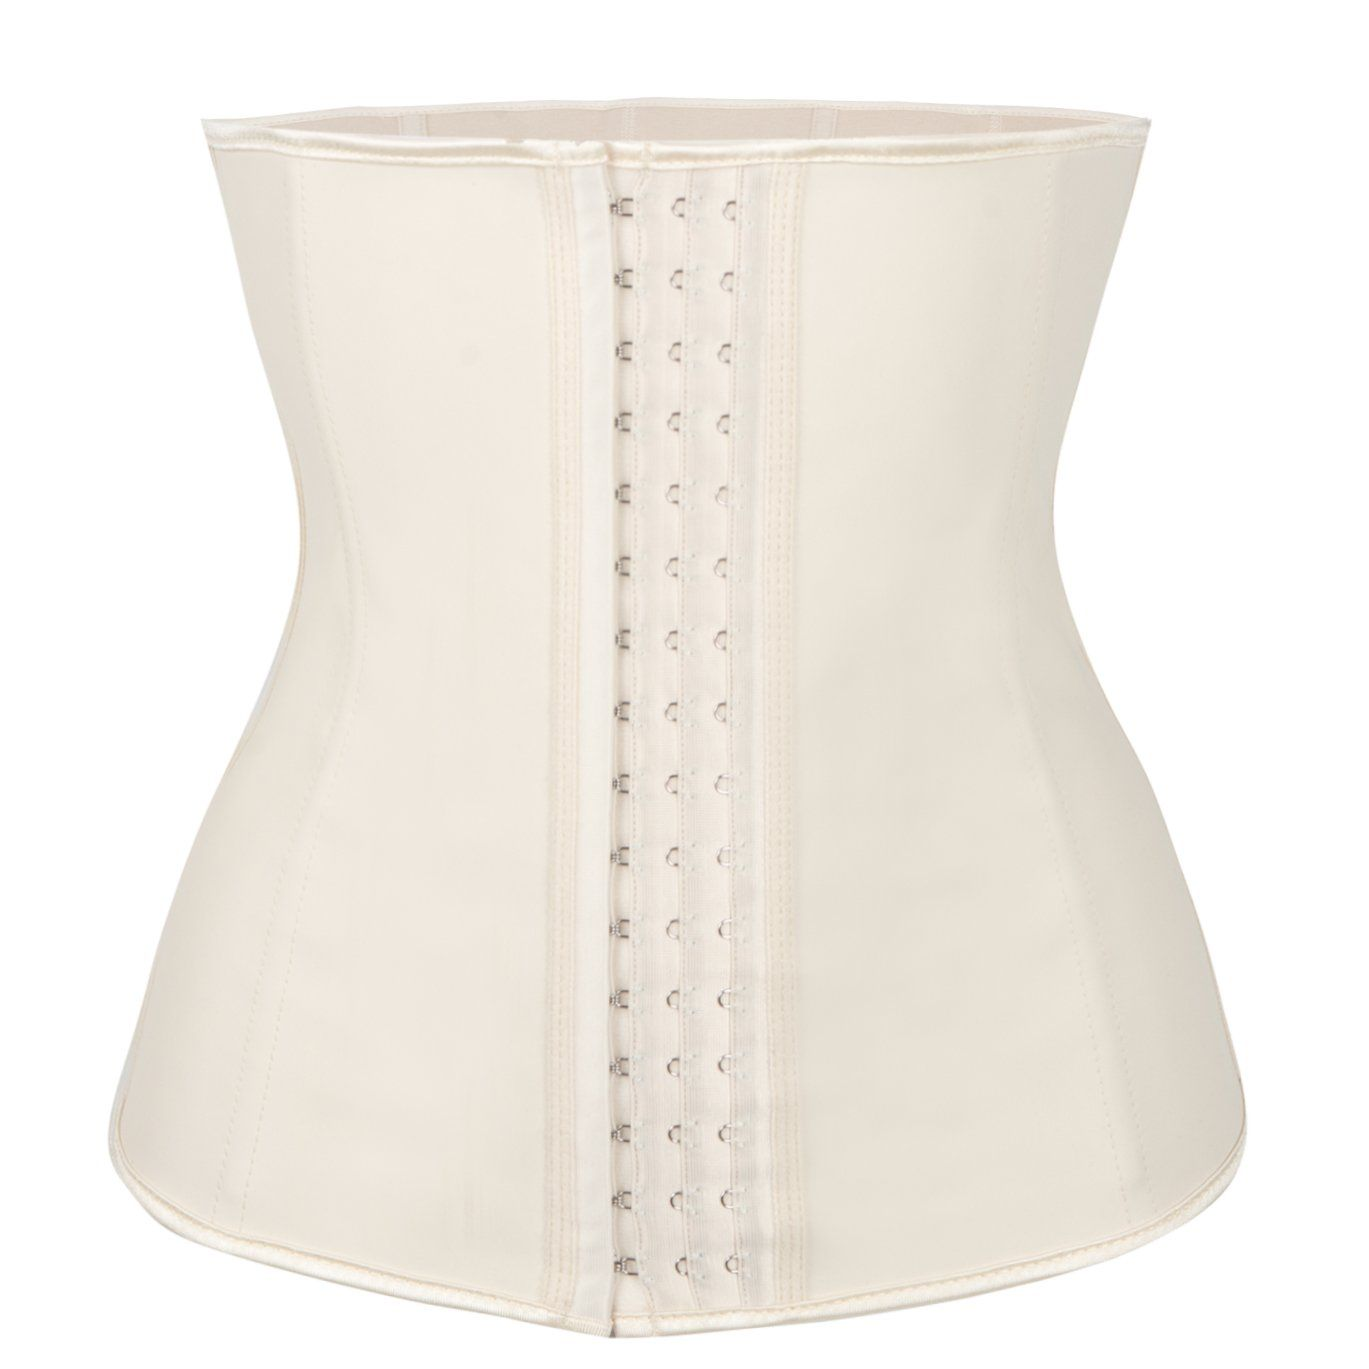 4600ba43203 35 Days Delivery Latex Waist Trainer Corsets Long Torso Slimming Tummy  Control Waist Training Cincher Underbust Corset Women Girdles Fajas Workout  Body ...